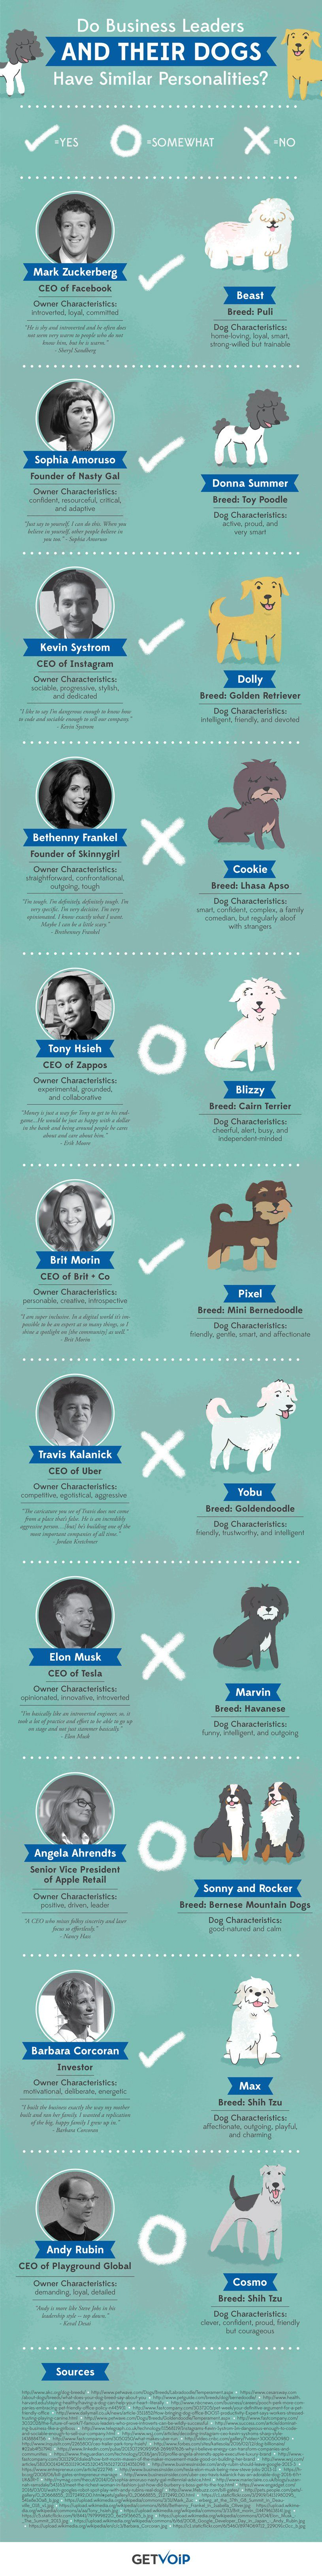 Do Business Leaders and Their Dogs Have Similar Personalities? #infographic